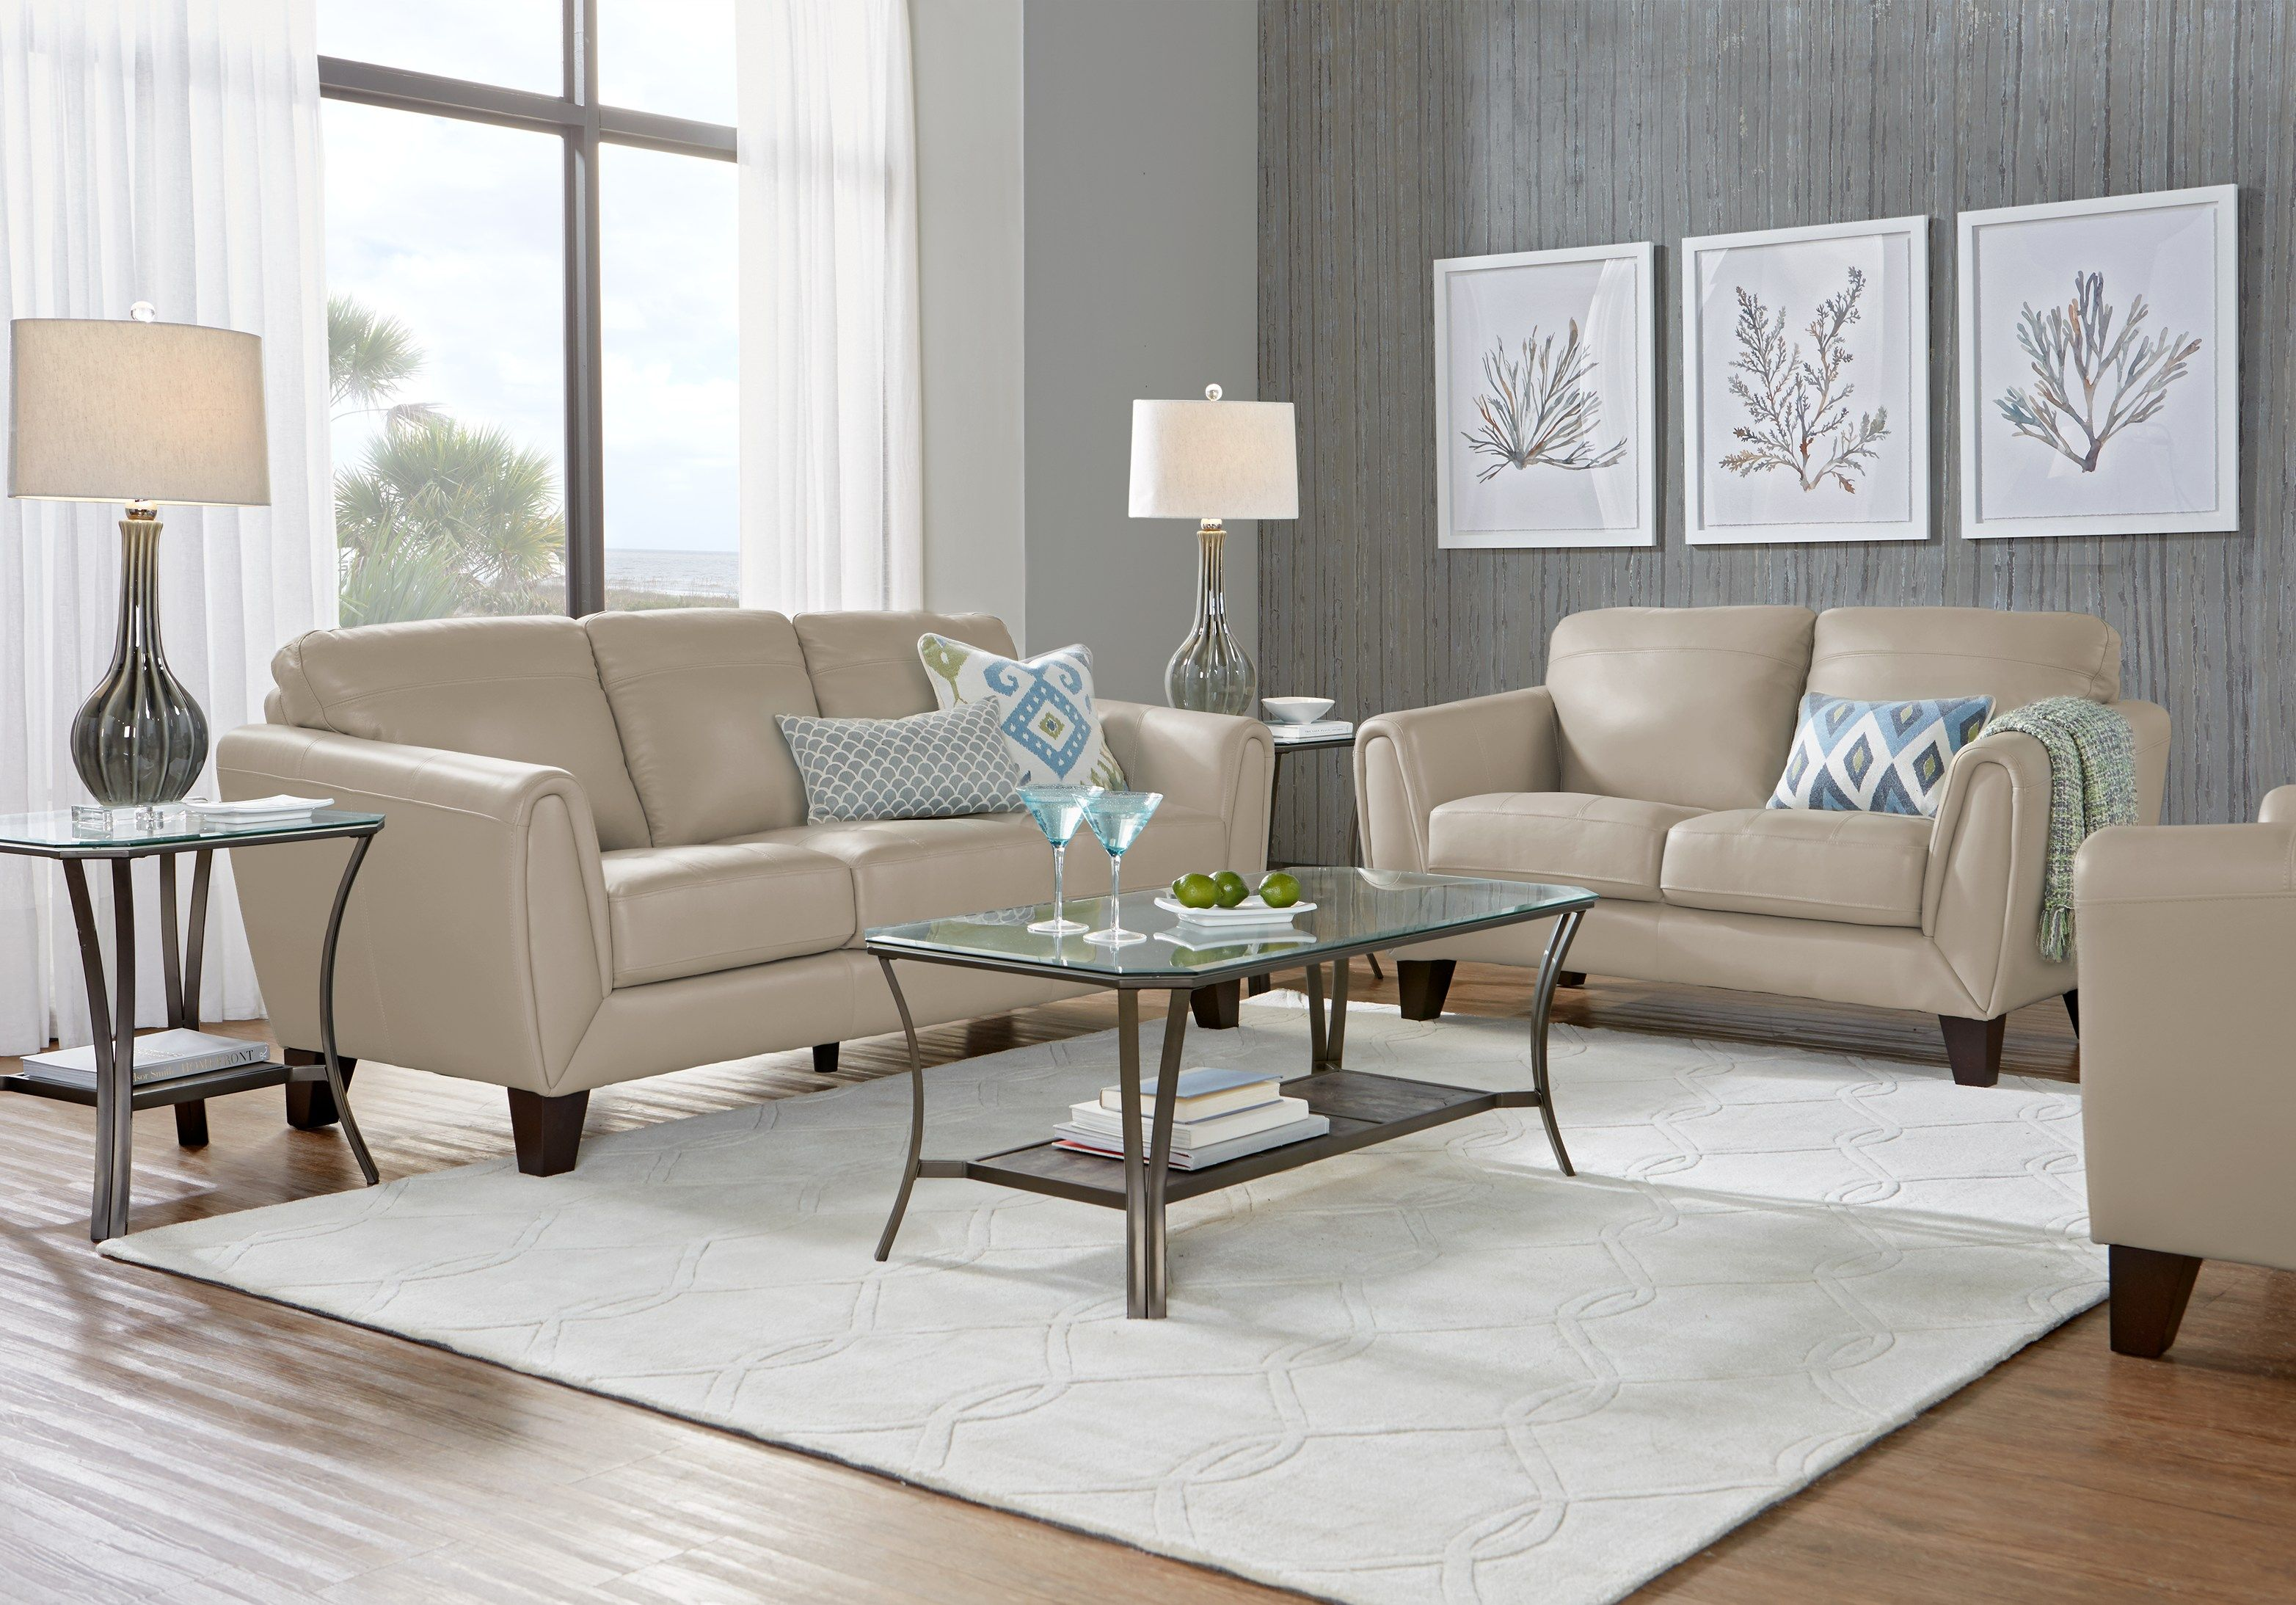 Livorno Beige Leather 3 Pc Living Room Leather Living Room